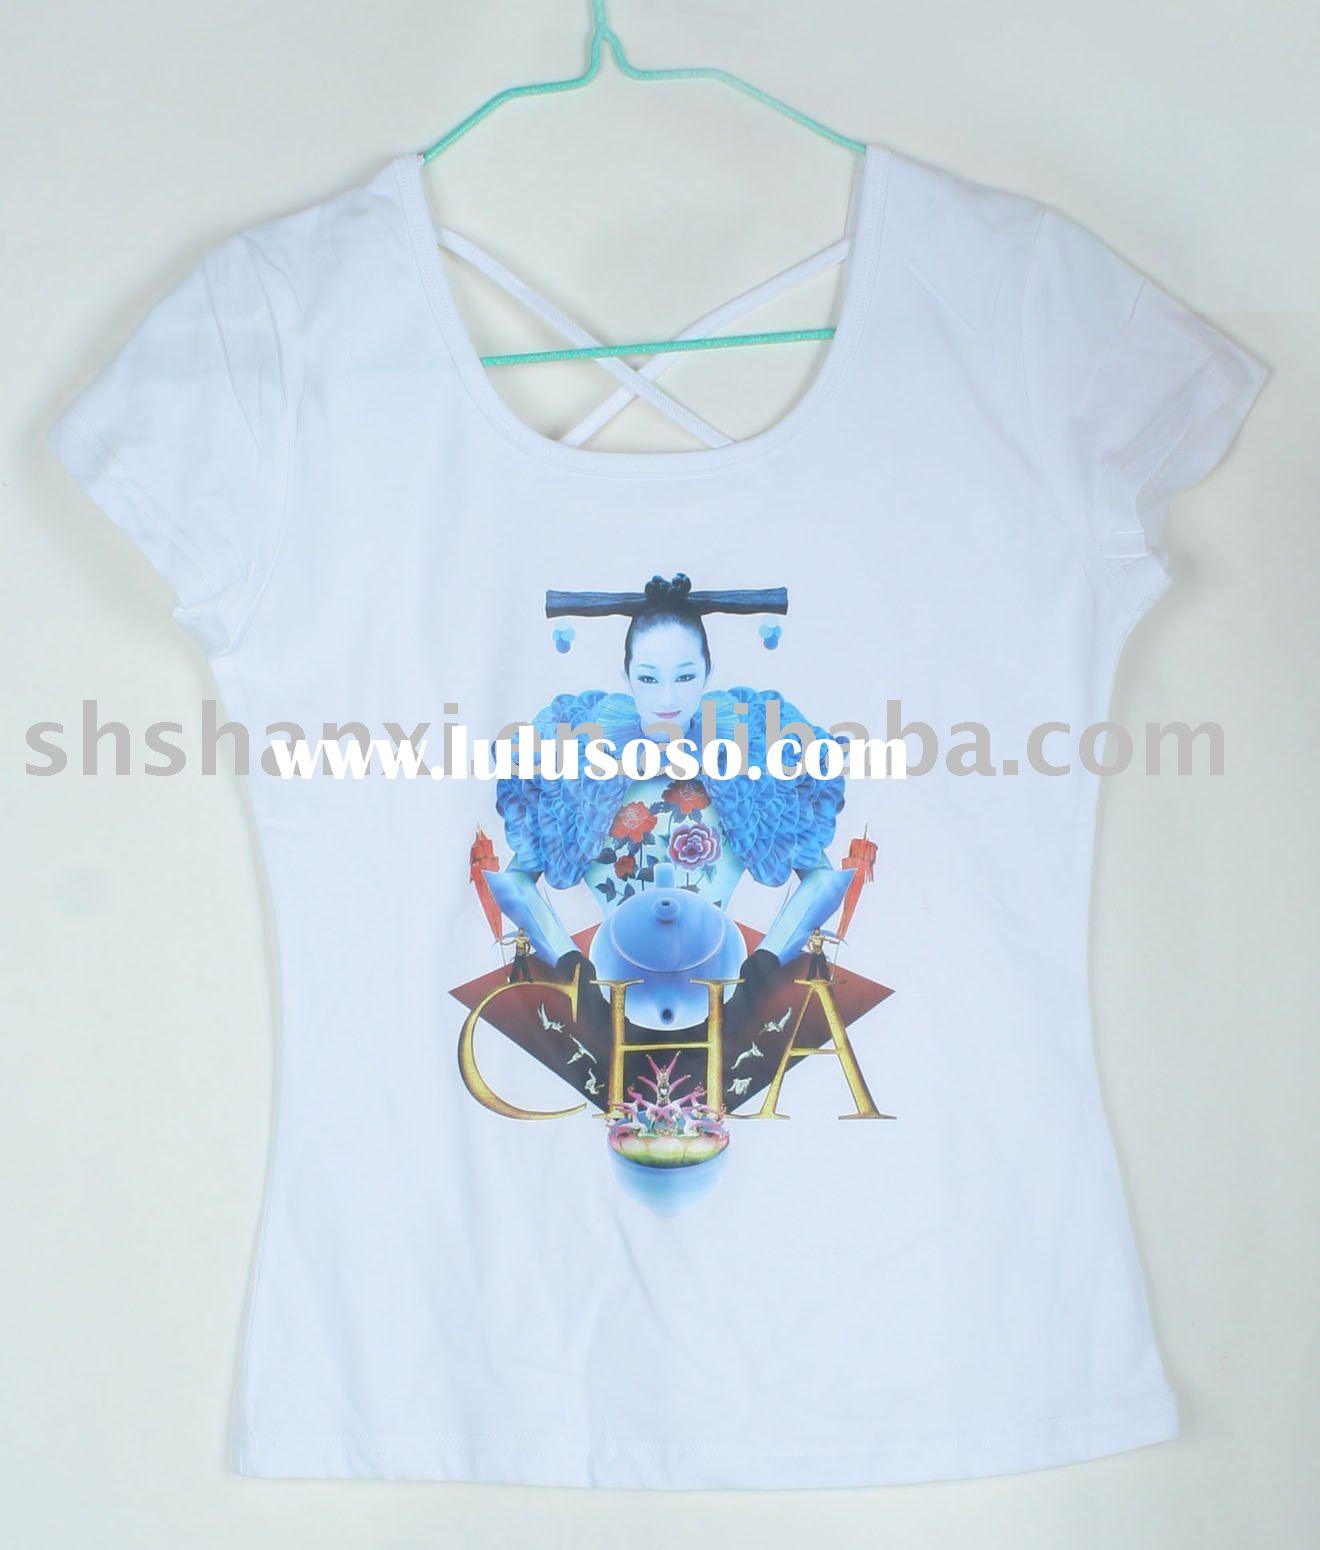 t shirt printing service with my art, t shirt printing service ...